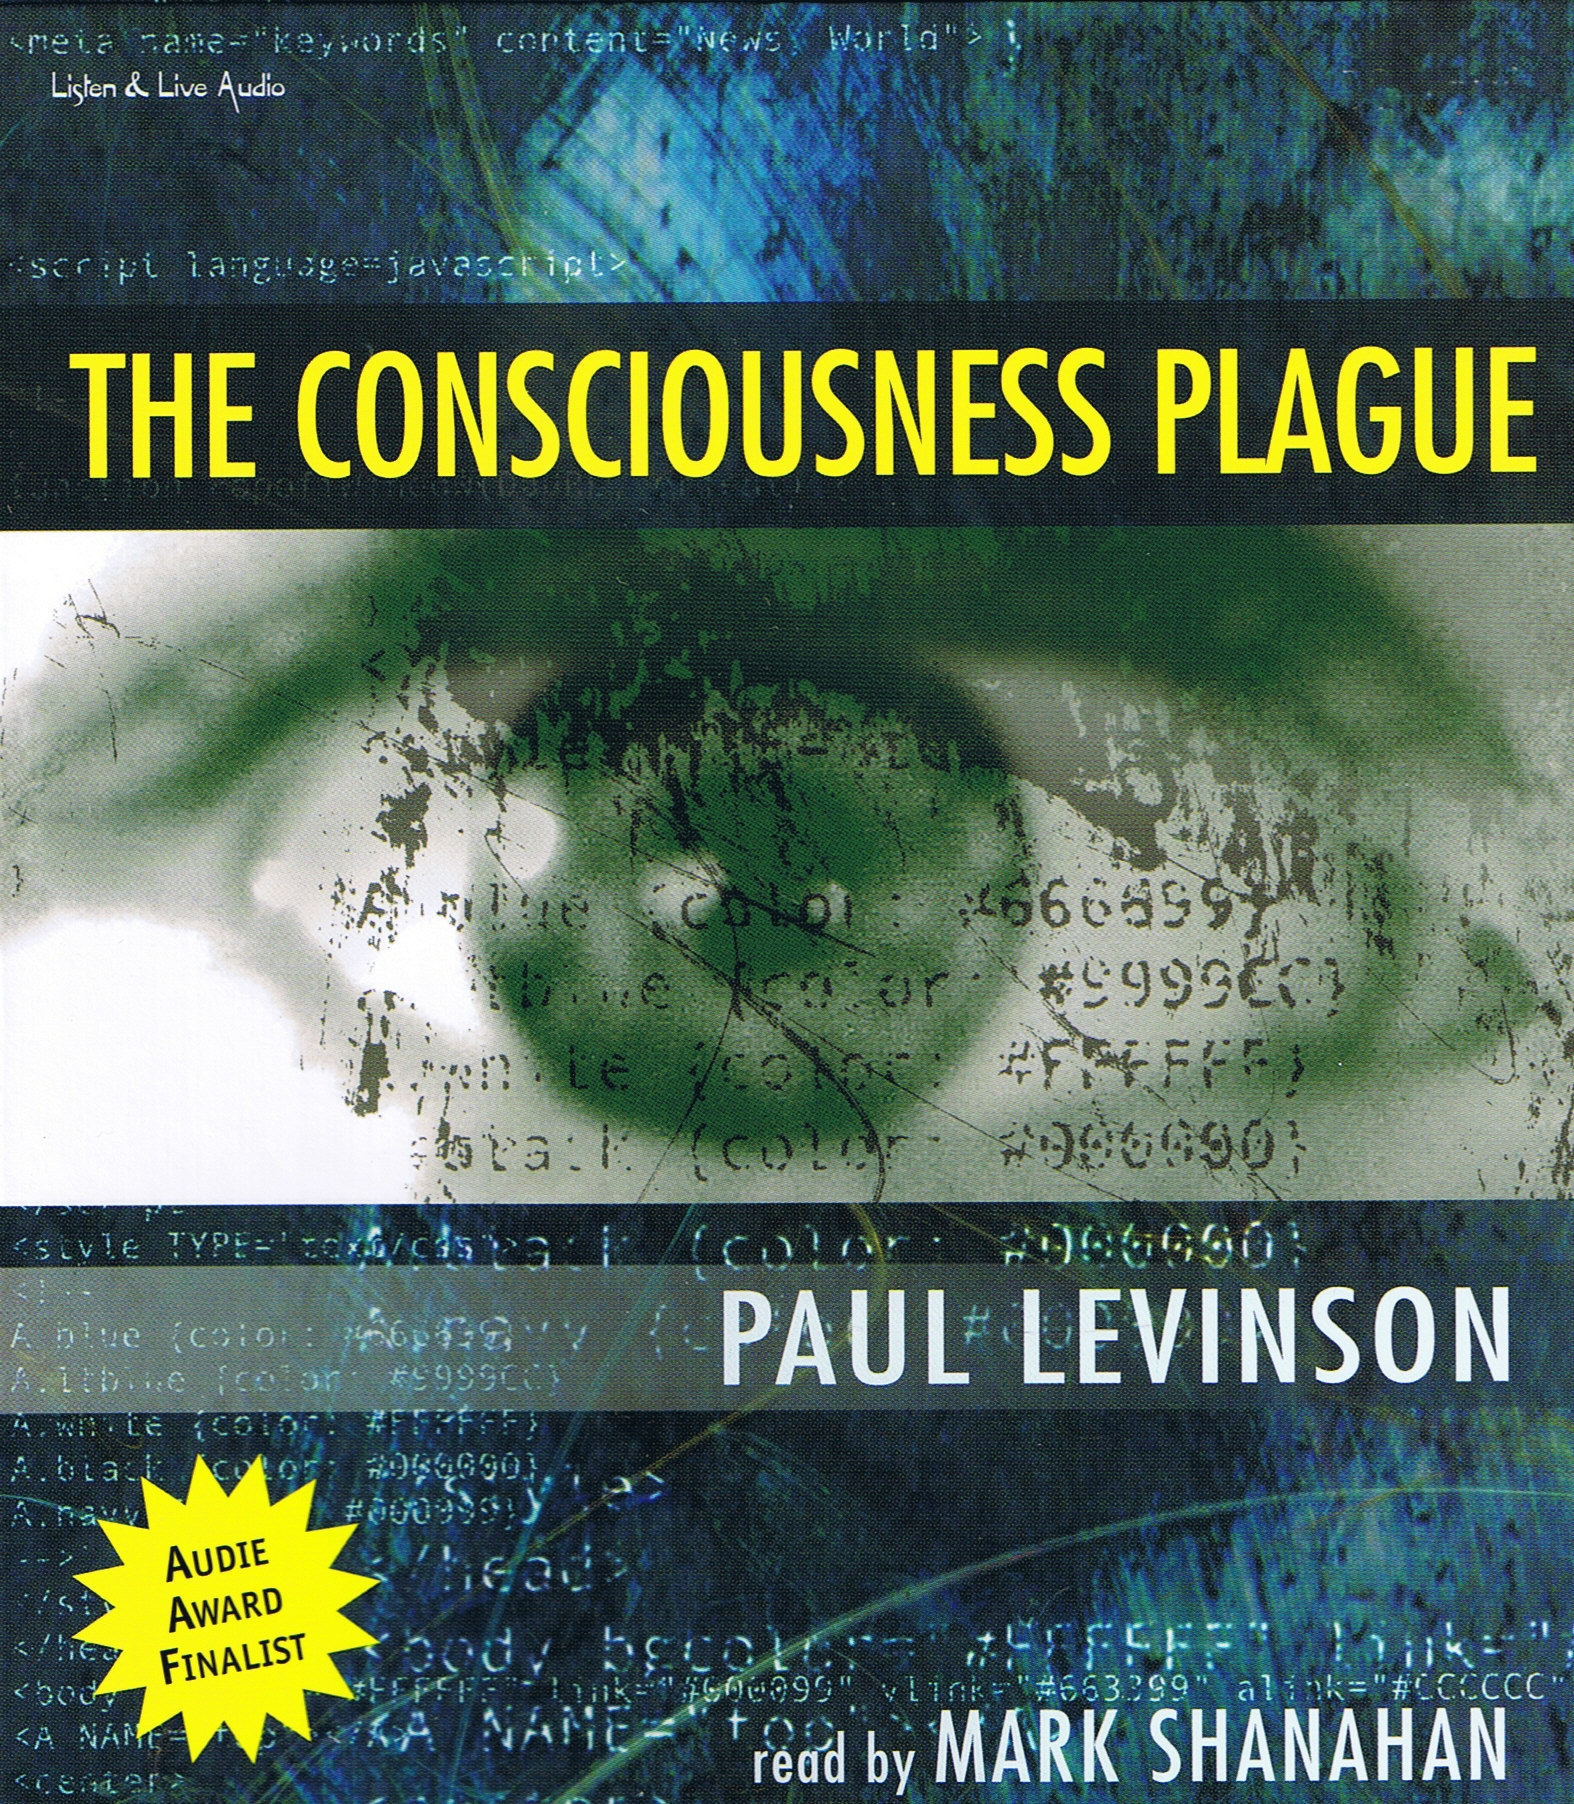 The Consciousness Plague [7CD]